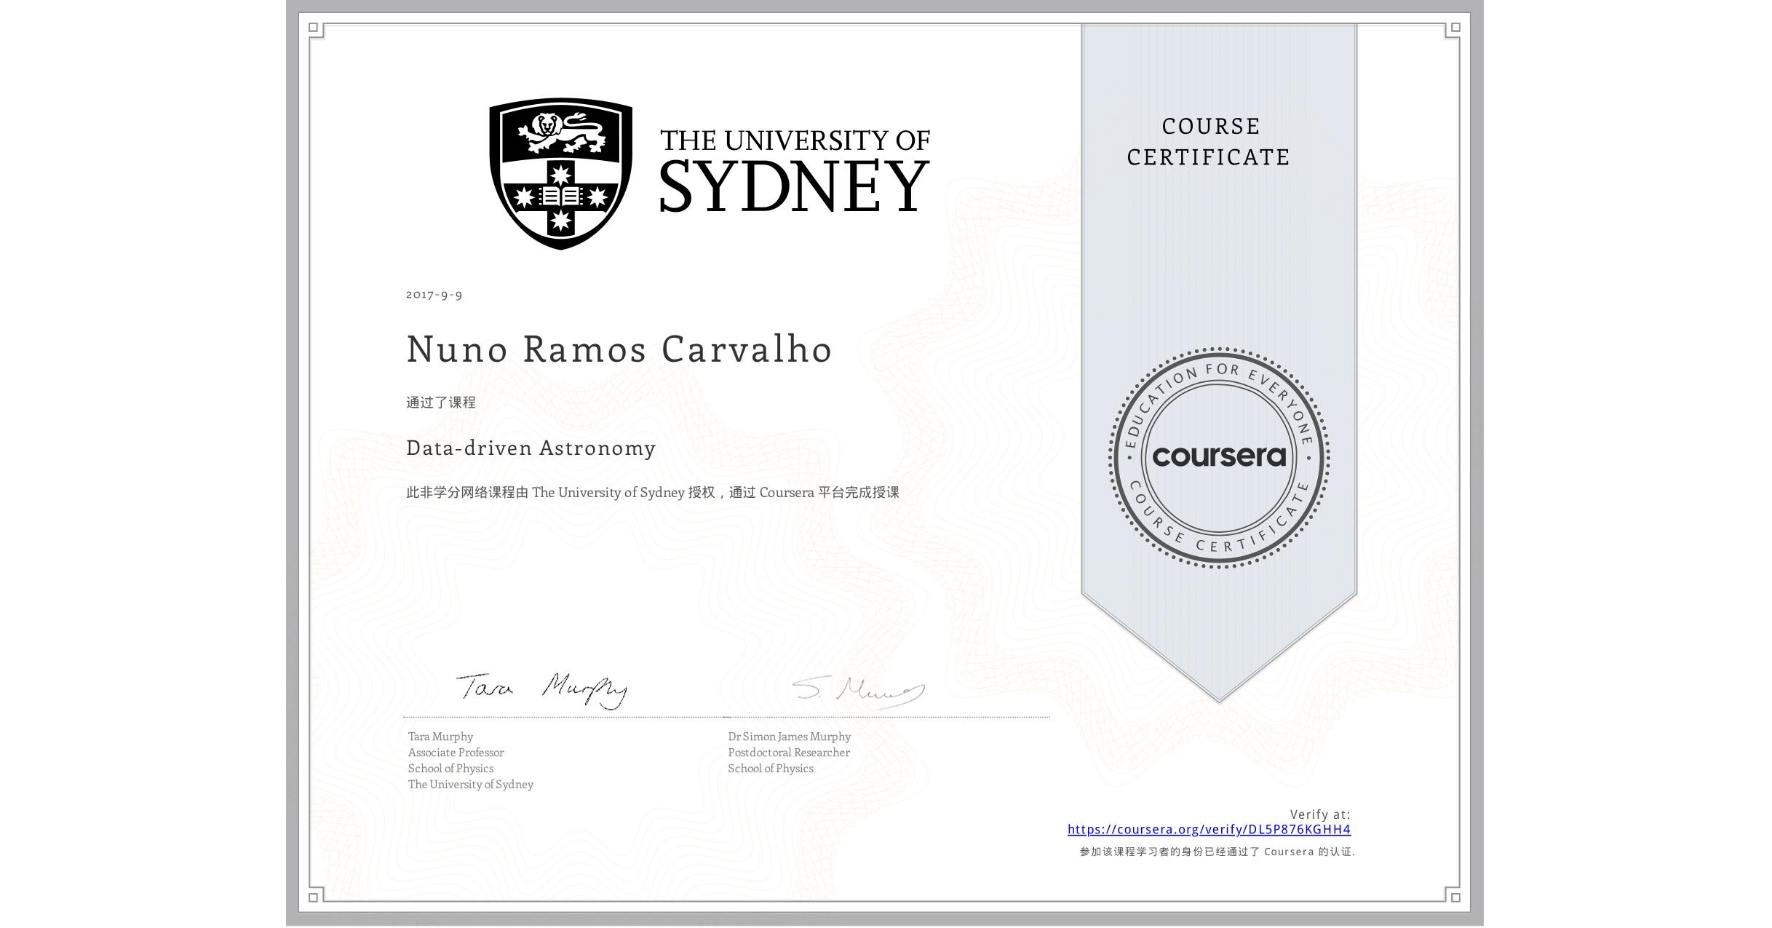 View certificate for Nuno Ramos Carvalho, Data-driven Astronomy, an online non-credit course authorized by The University of Sydney and offered through Coursera